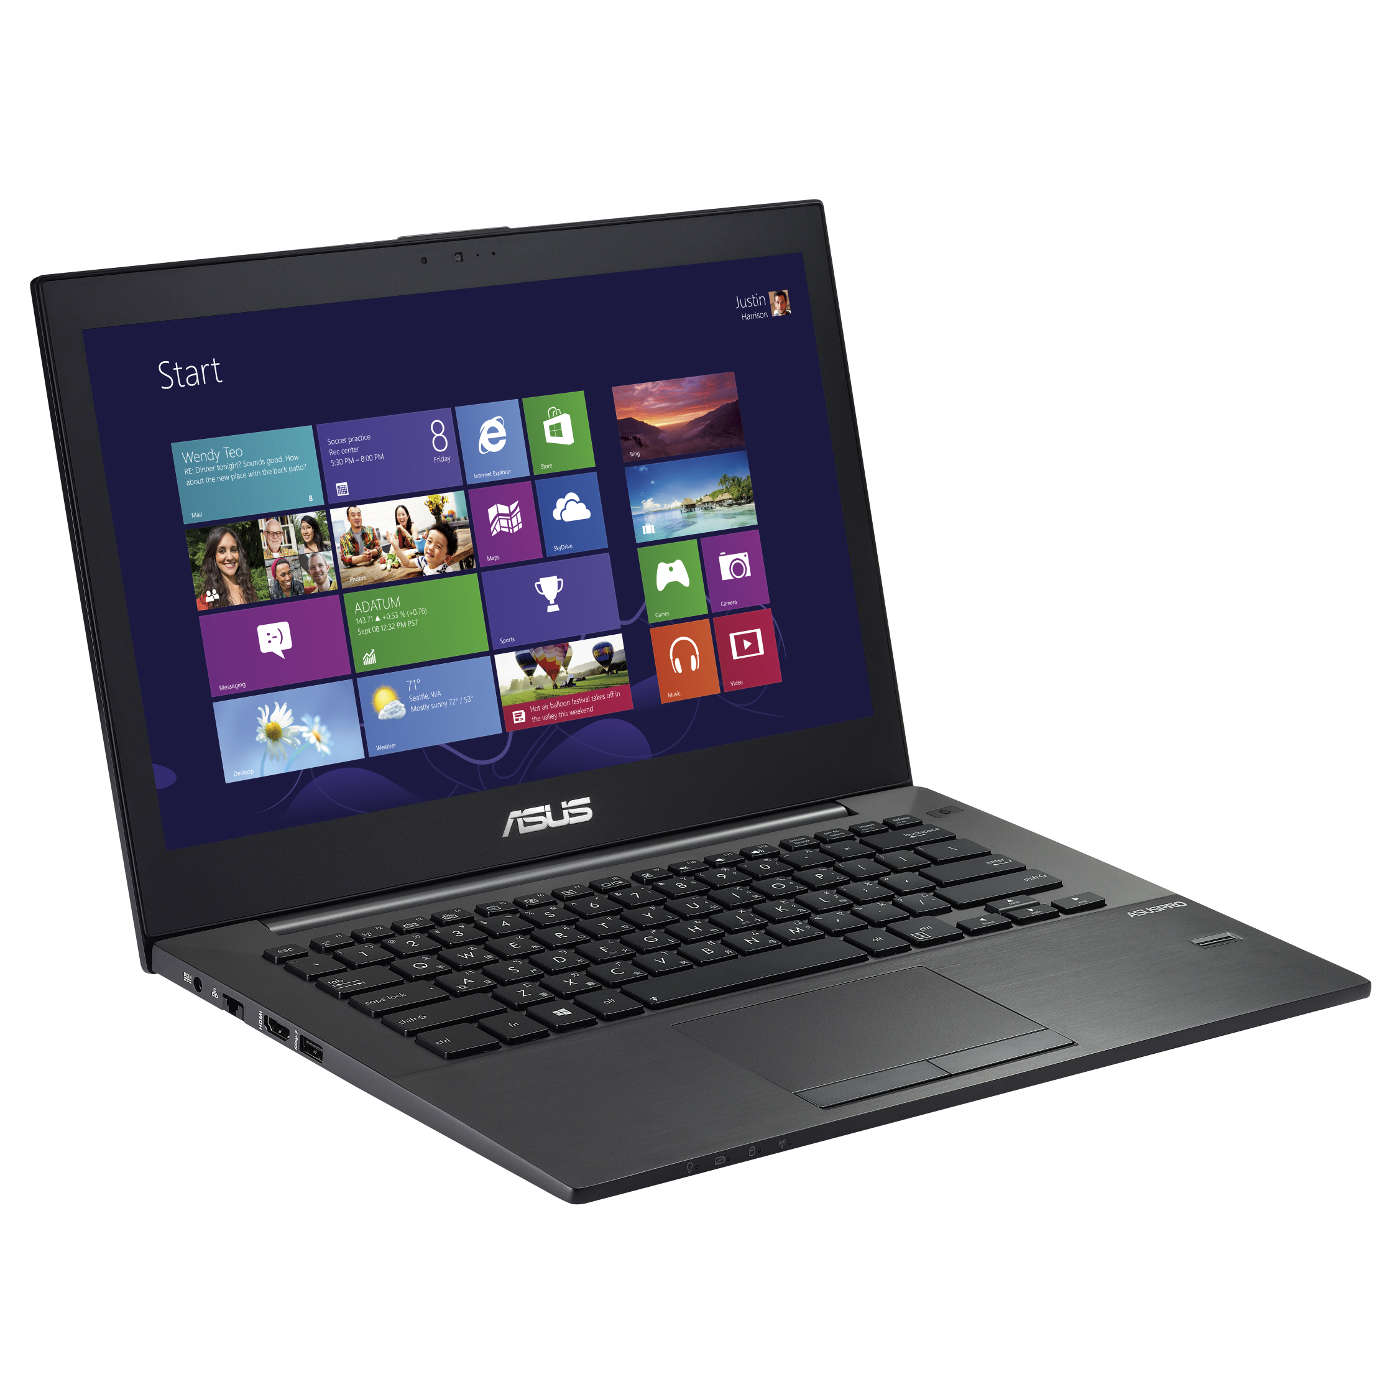 "PC portable ASUS BU401LA-CZ084G Intel Core i5-4285U 6 Go SSHD 500 Go 14"" LED Wi-Fi N/Bluetooth Webcam Windows 7 Professionnel 64 bits + Windows 8.1 Pro 64 bits (garantie constructeur 2 ans)"